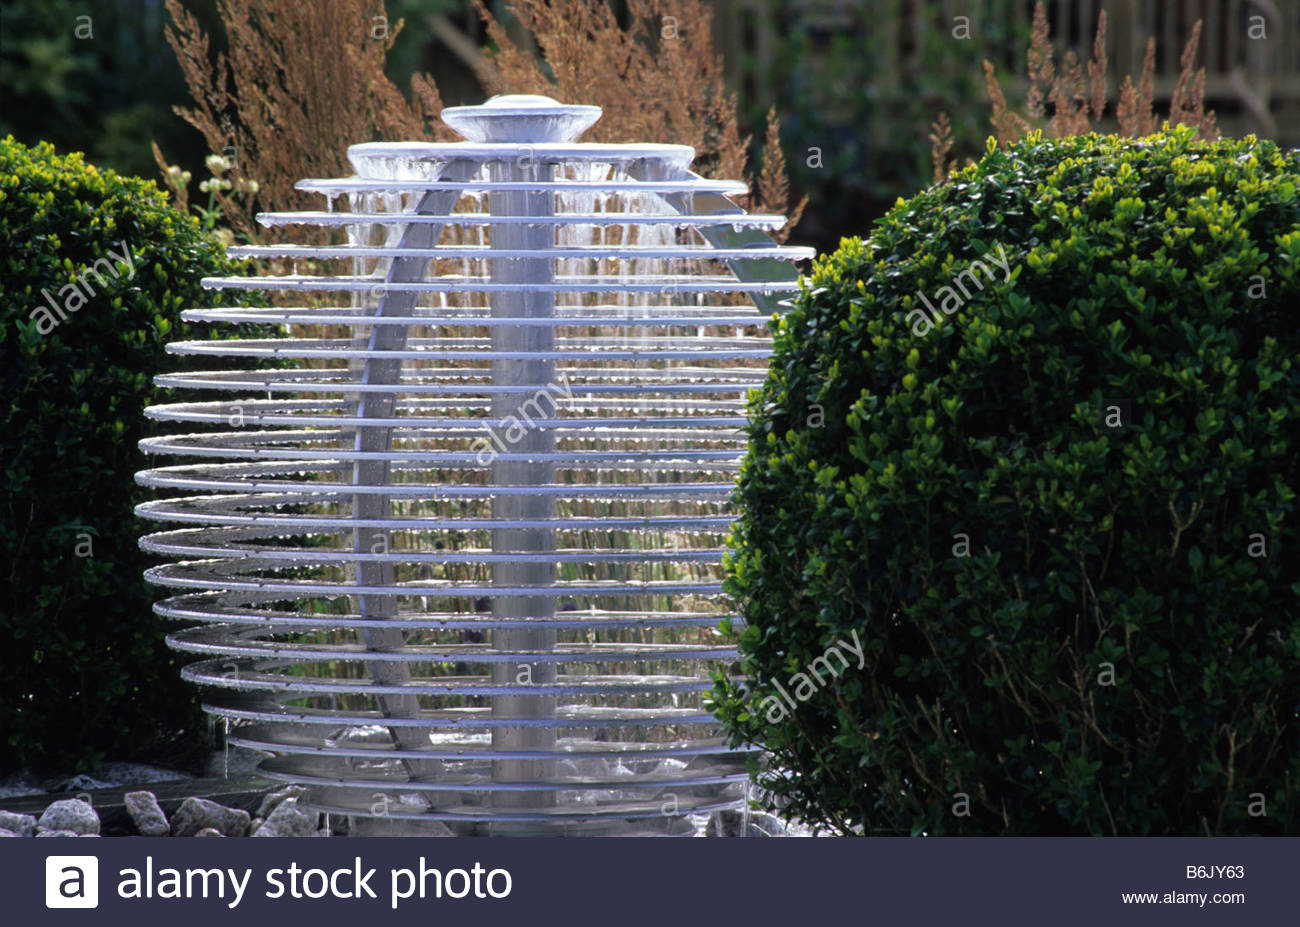 Hampton Court FS 2004 Design Chris Beardshaw Contemporary Water Feature  Spherical Drip Fountain With Boxwood Topiary